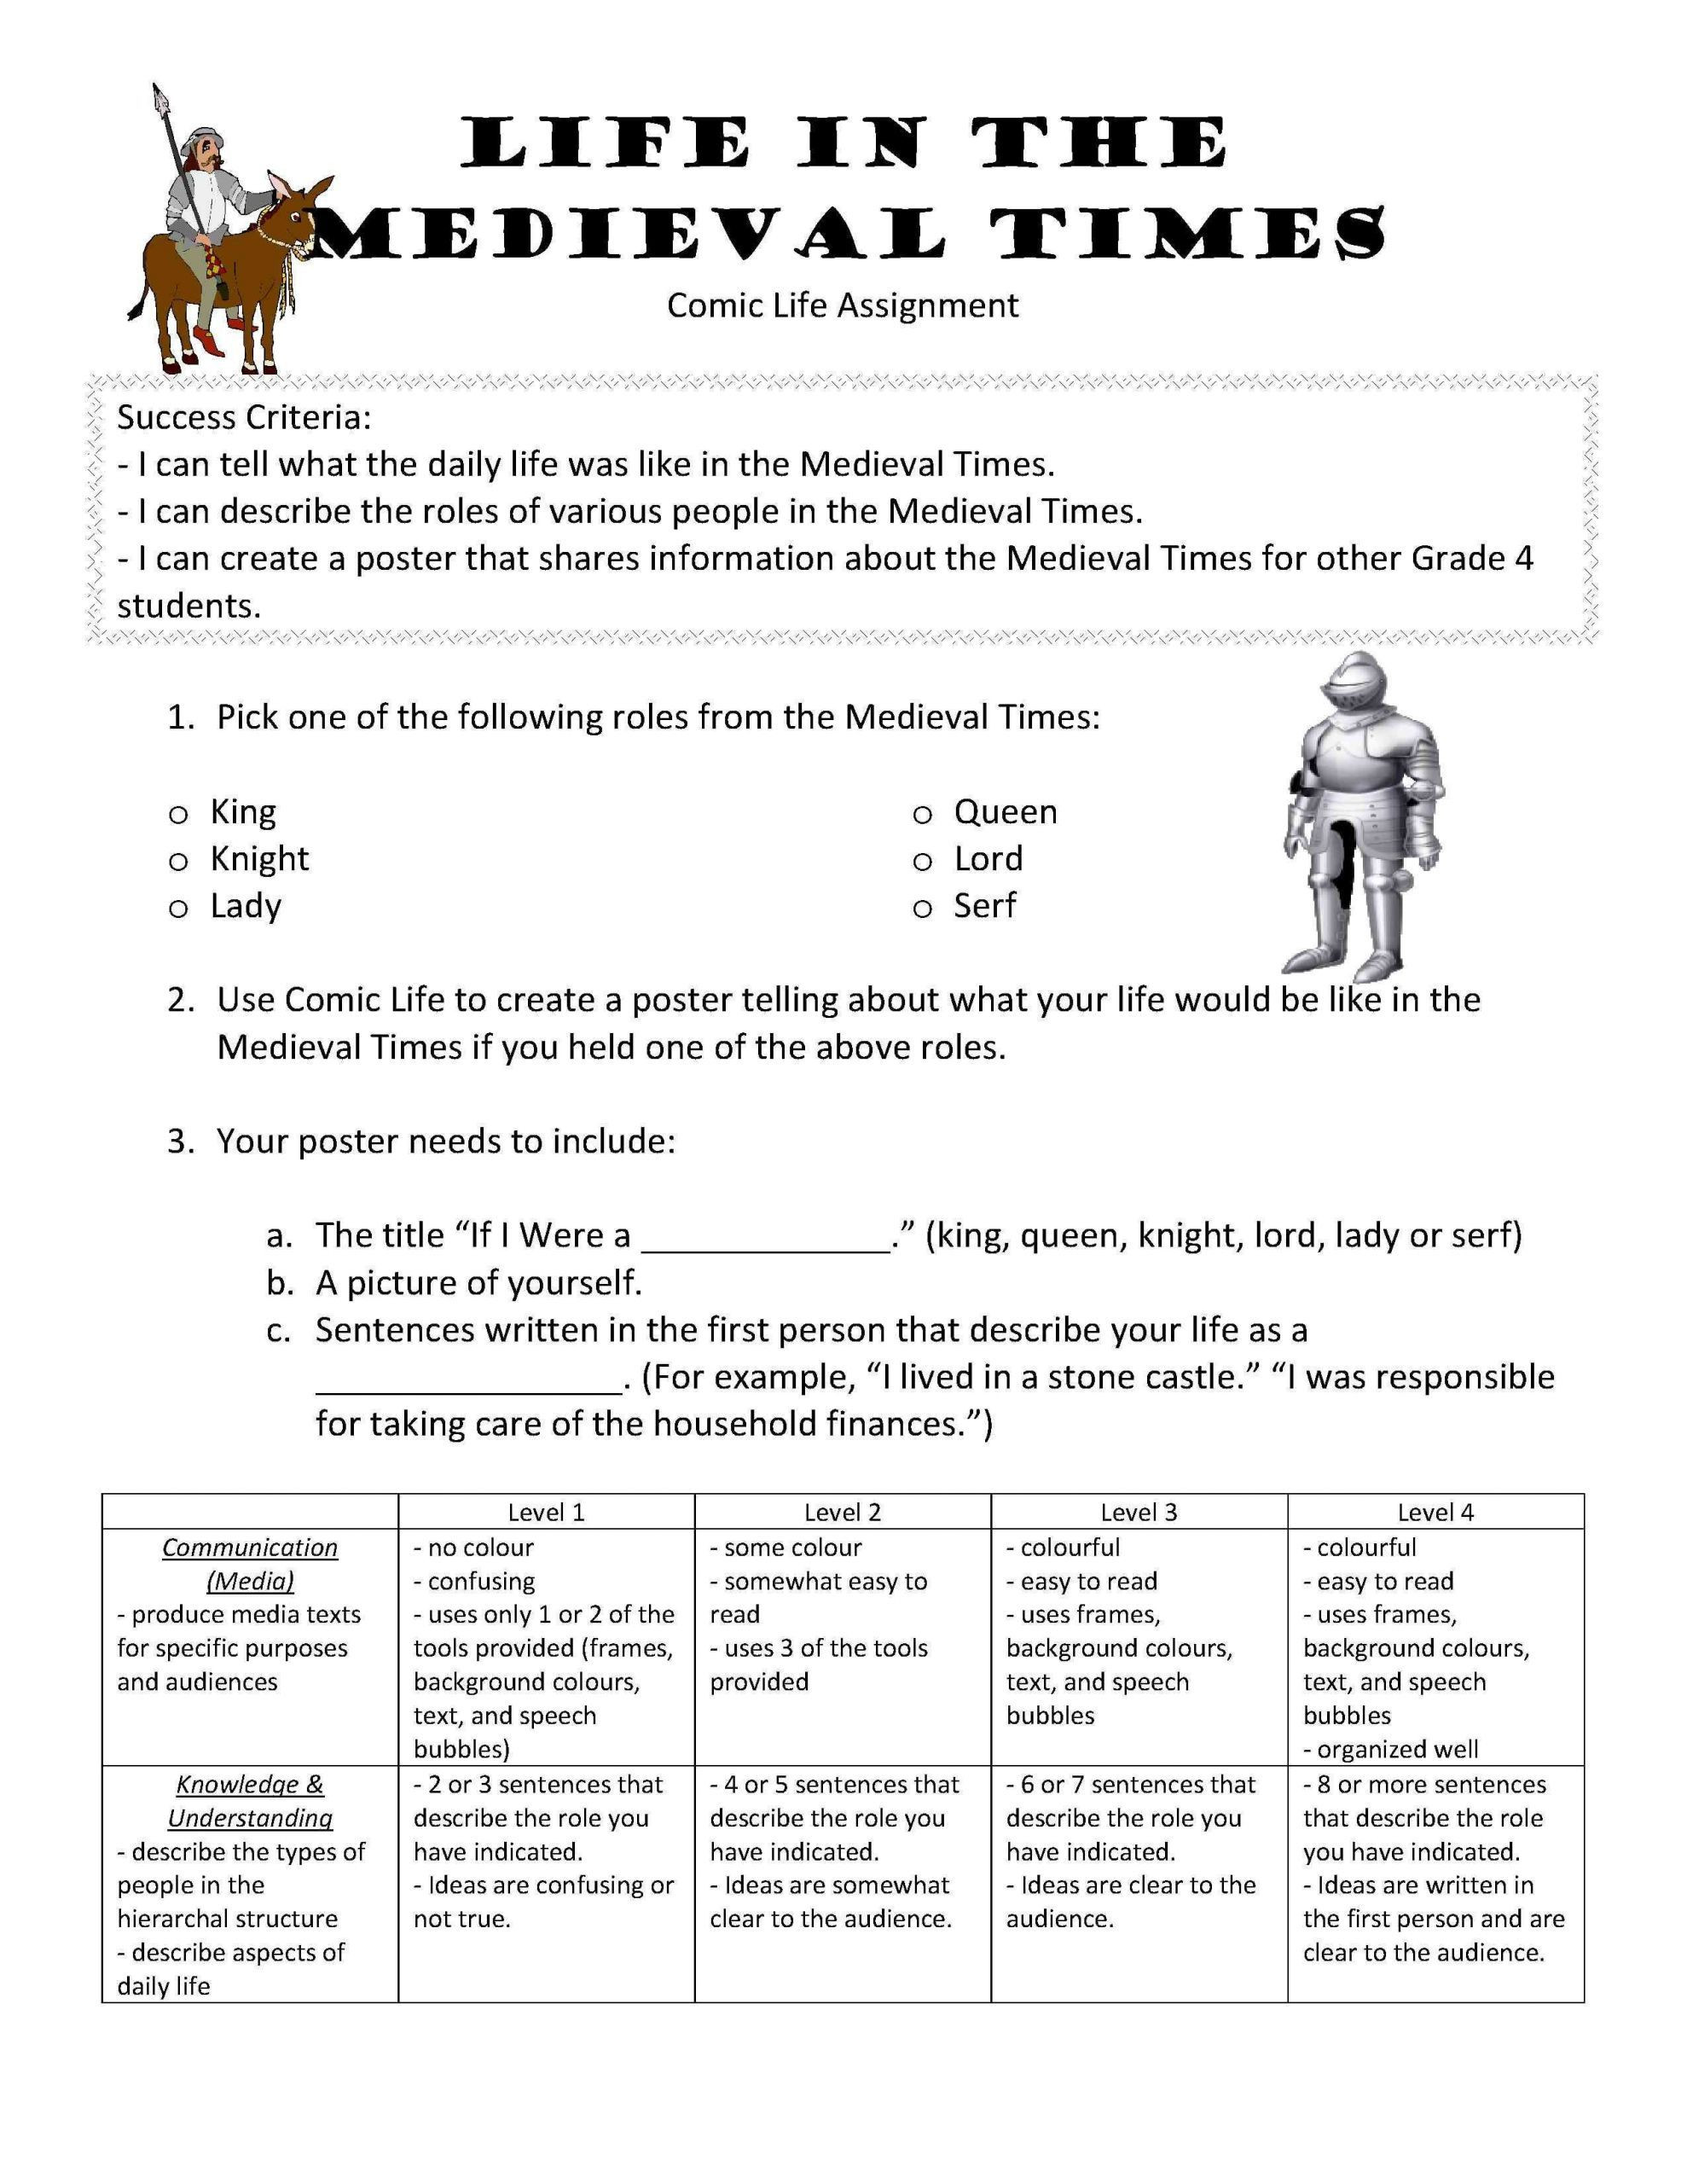 Middle Ages Worksheets 6th Grade 5 Me Val Times Worksheets Printable In 2020